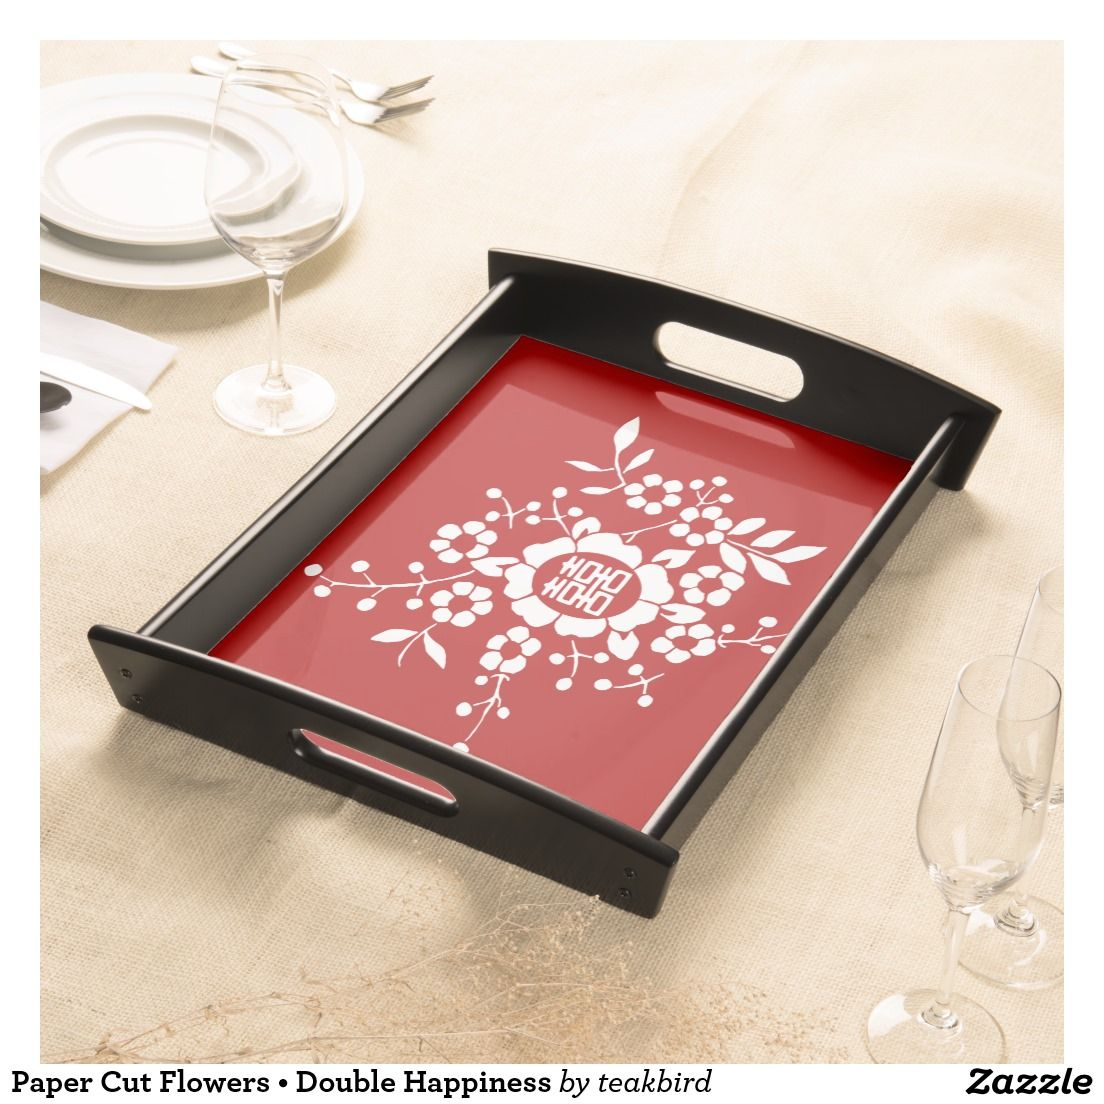 Paper Cut Flowers • Double Happiness Serving Tray